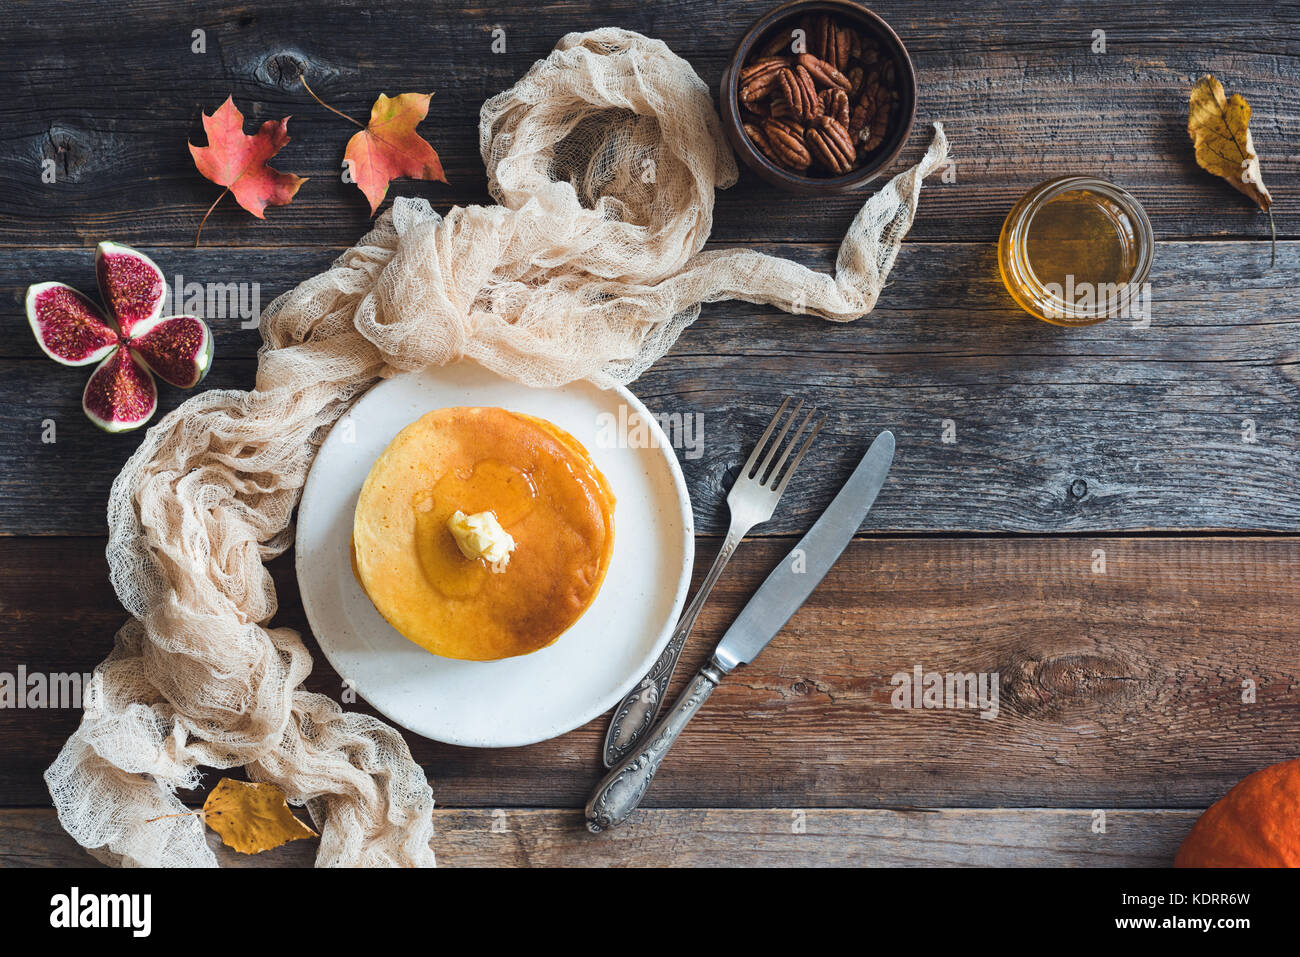 Pancakes with butter, pecan nuts, figs and honey on wooden table with copy space for text. Autumn food, pumpkin - Stock Image